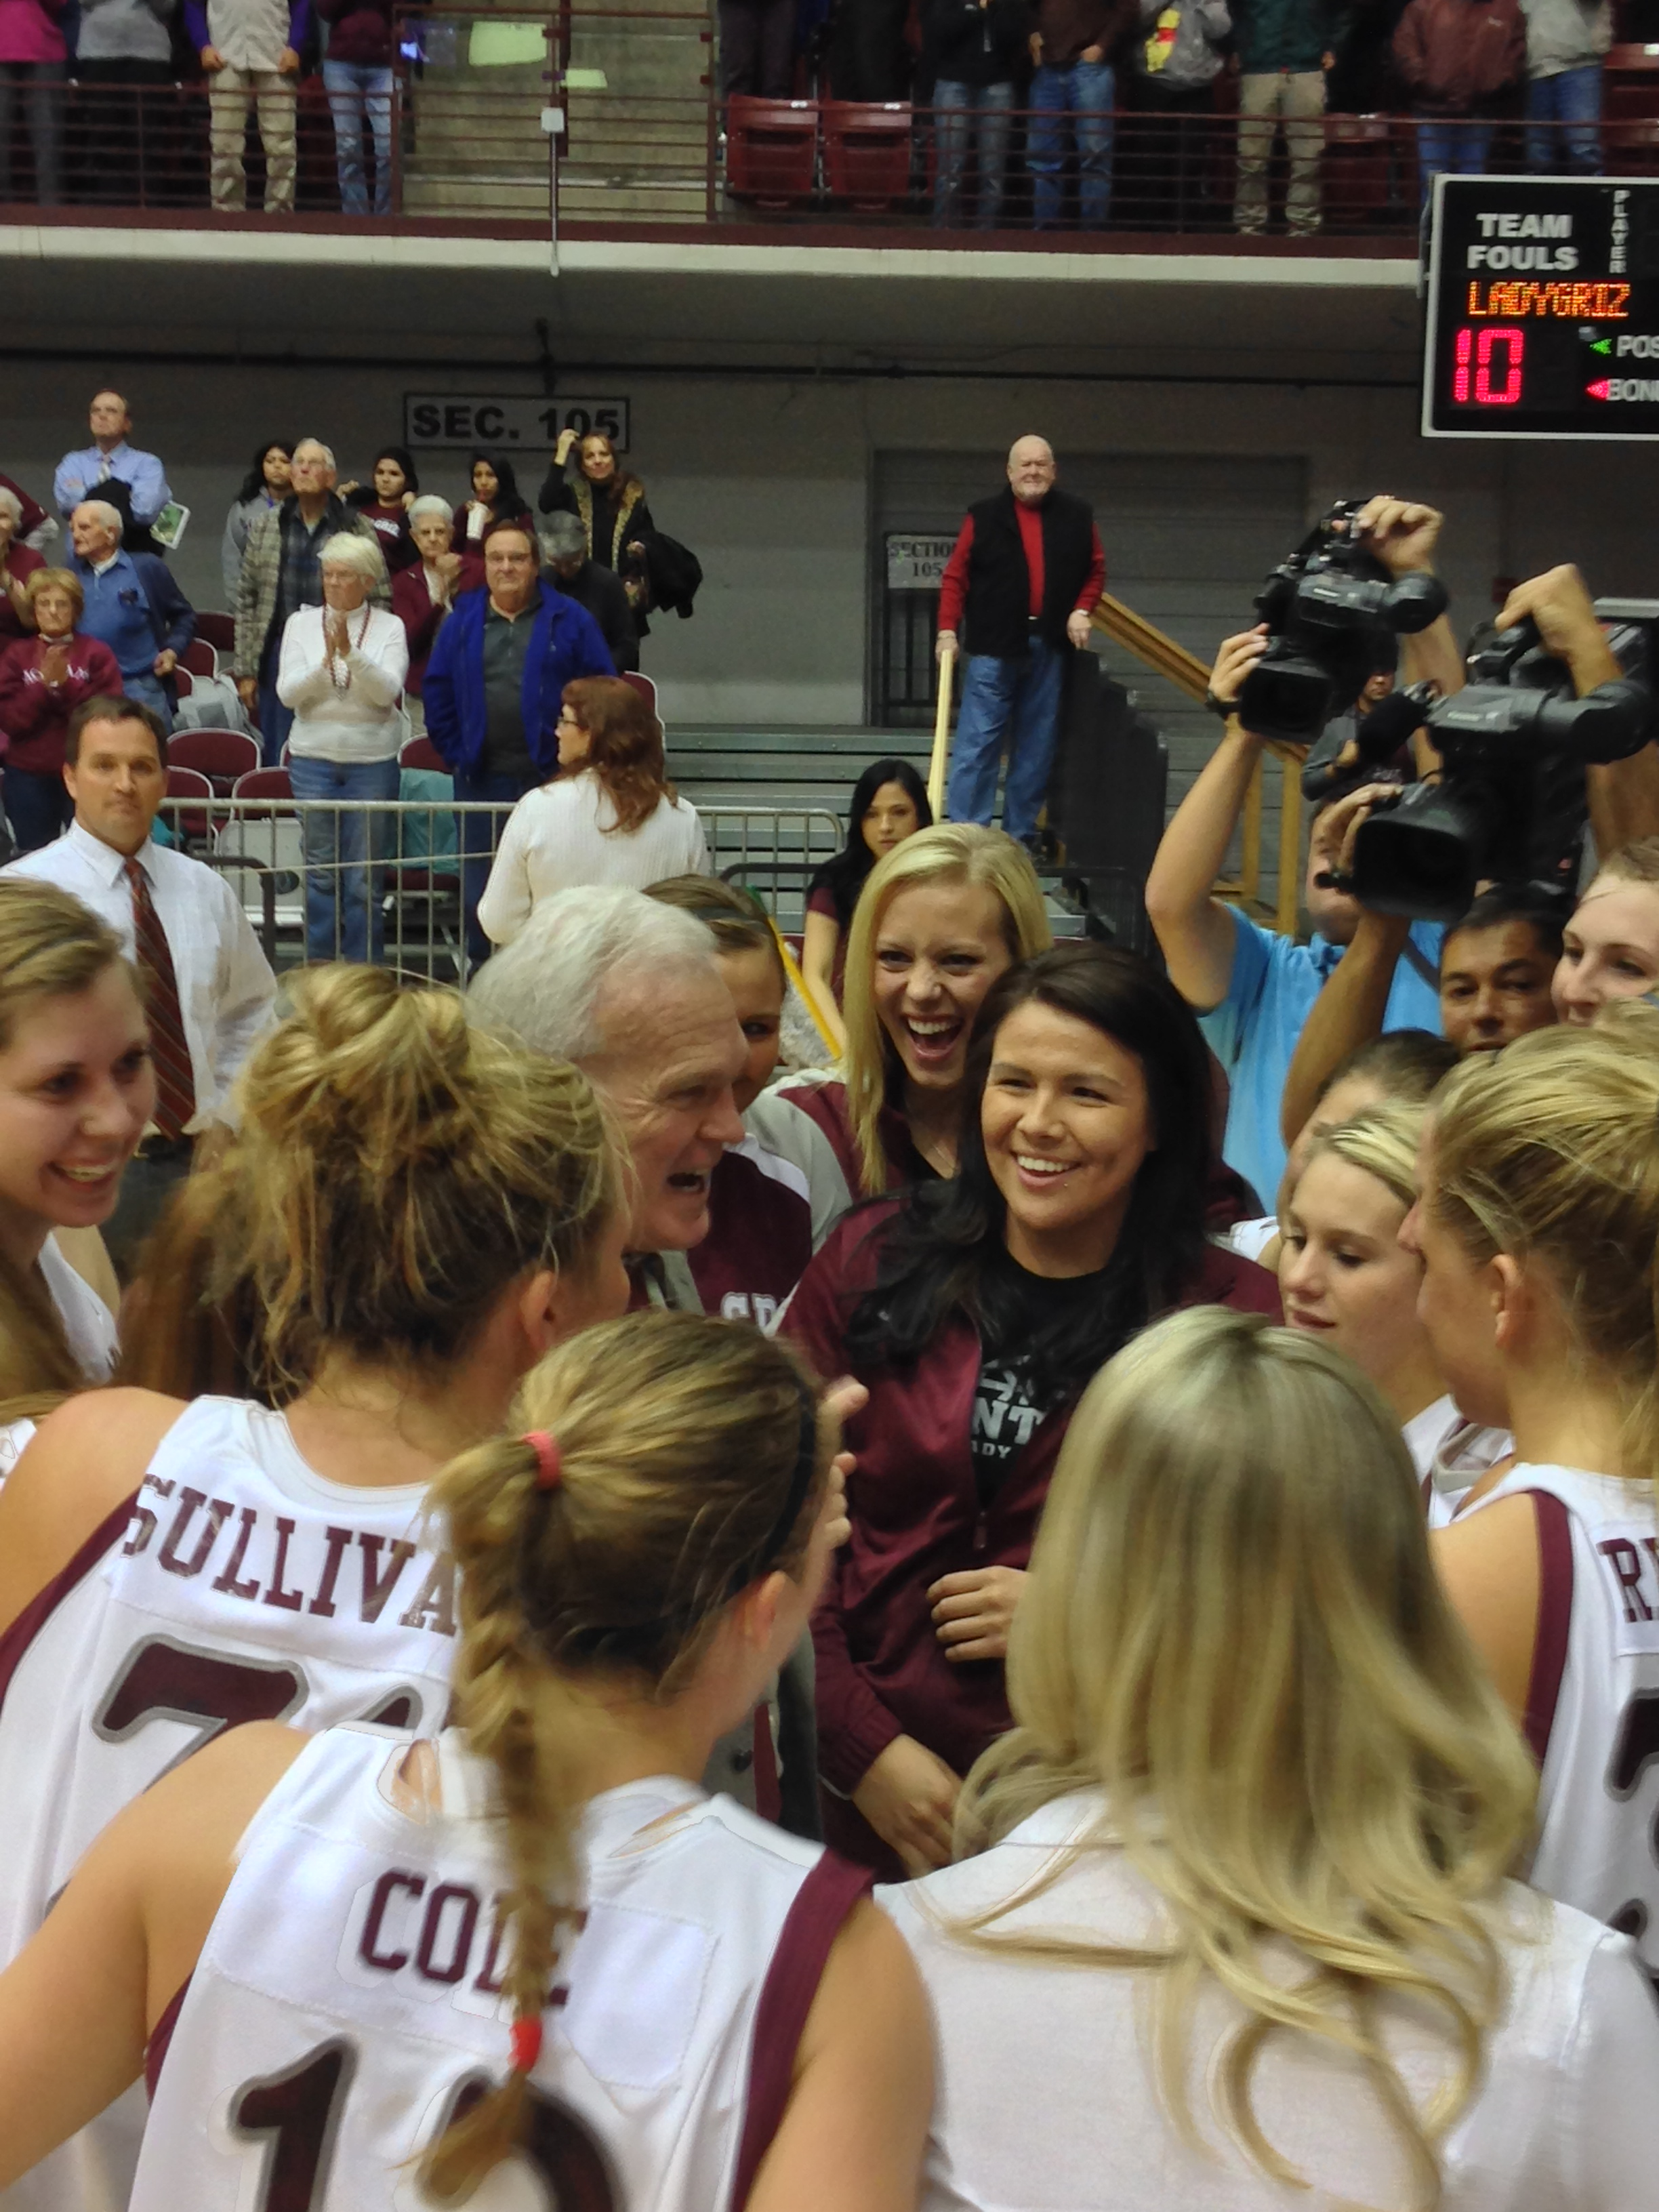 Coach Selvig spent a happy minute with his team in the huddle after winning his 800th game.